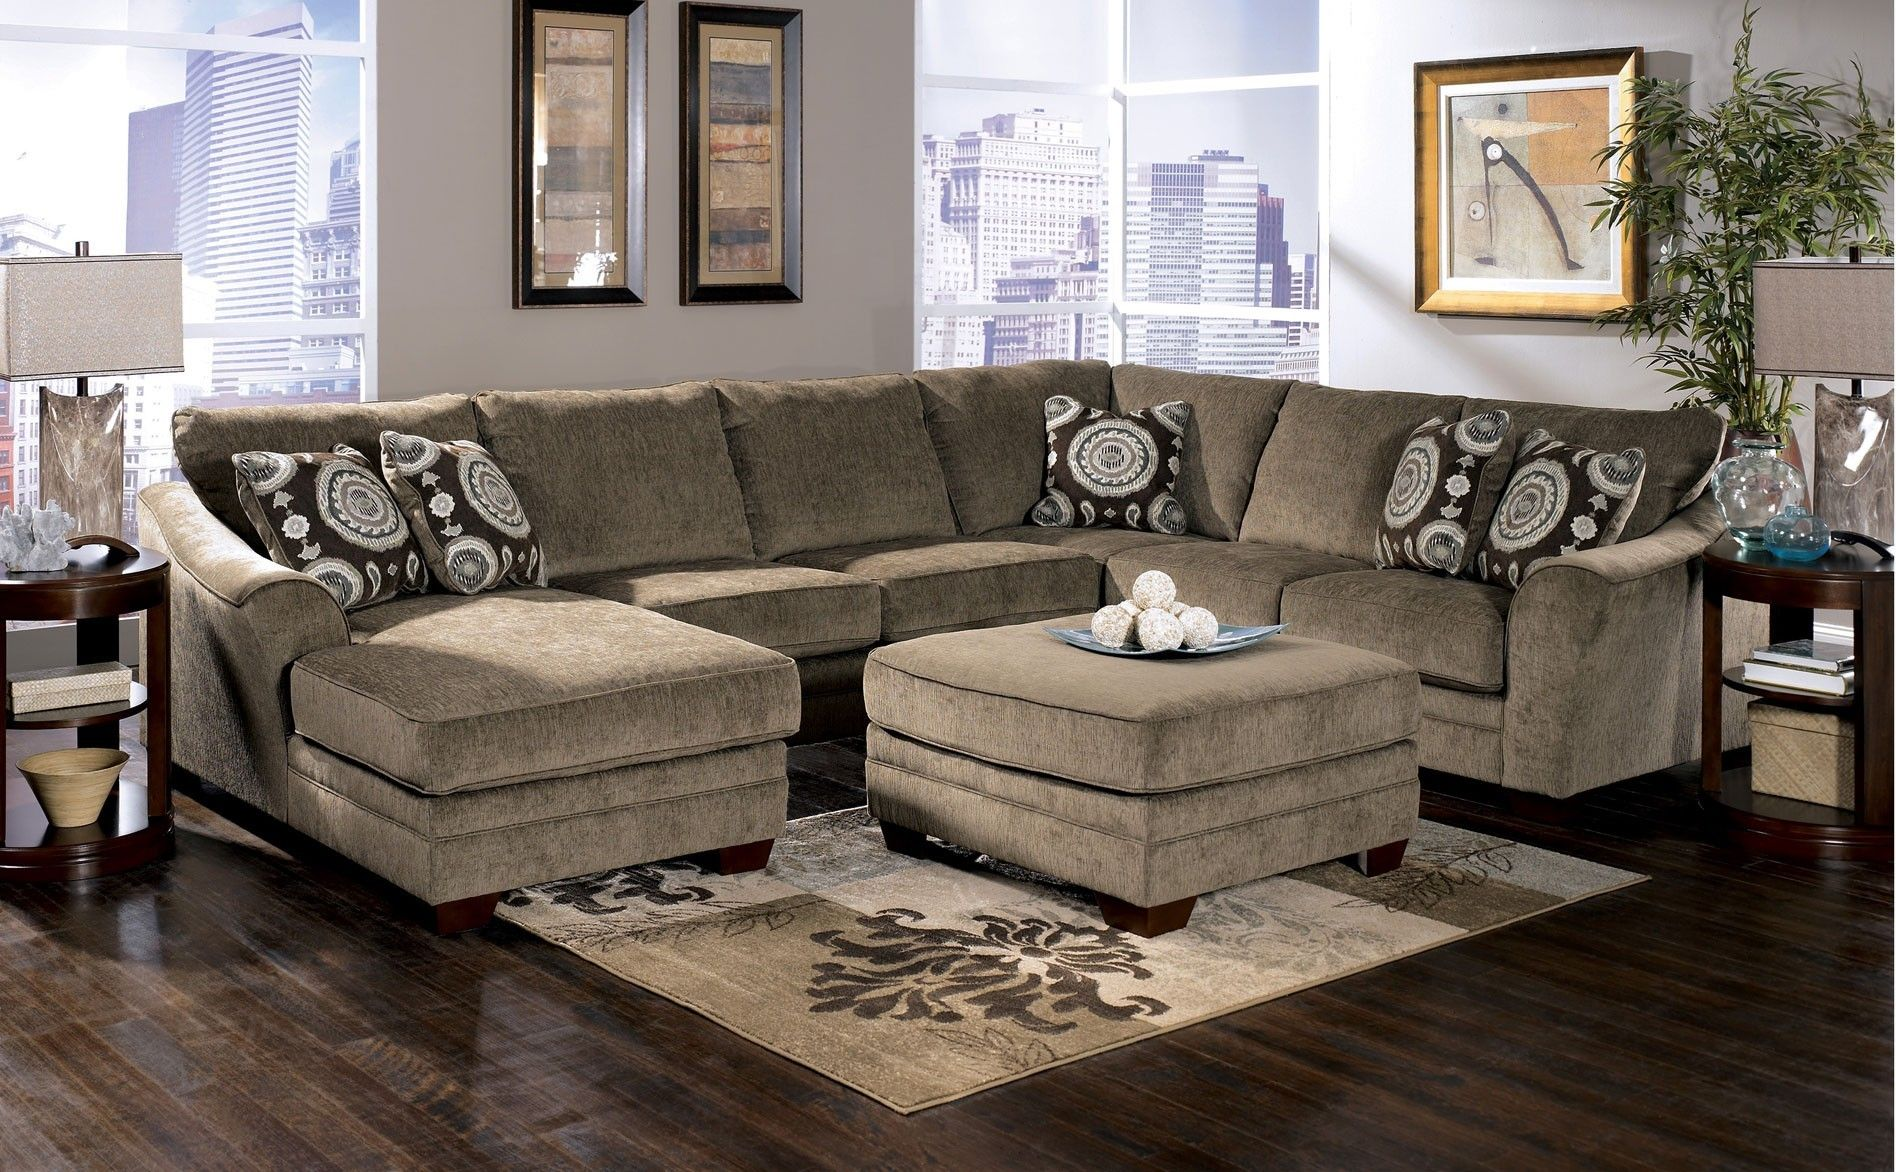 oversized couches living room - Google Search | For the Home ...